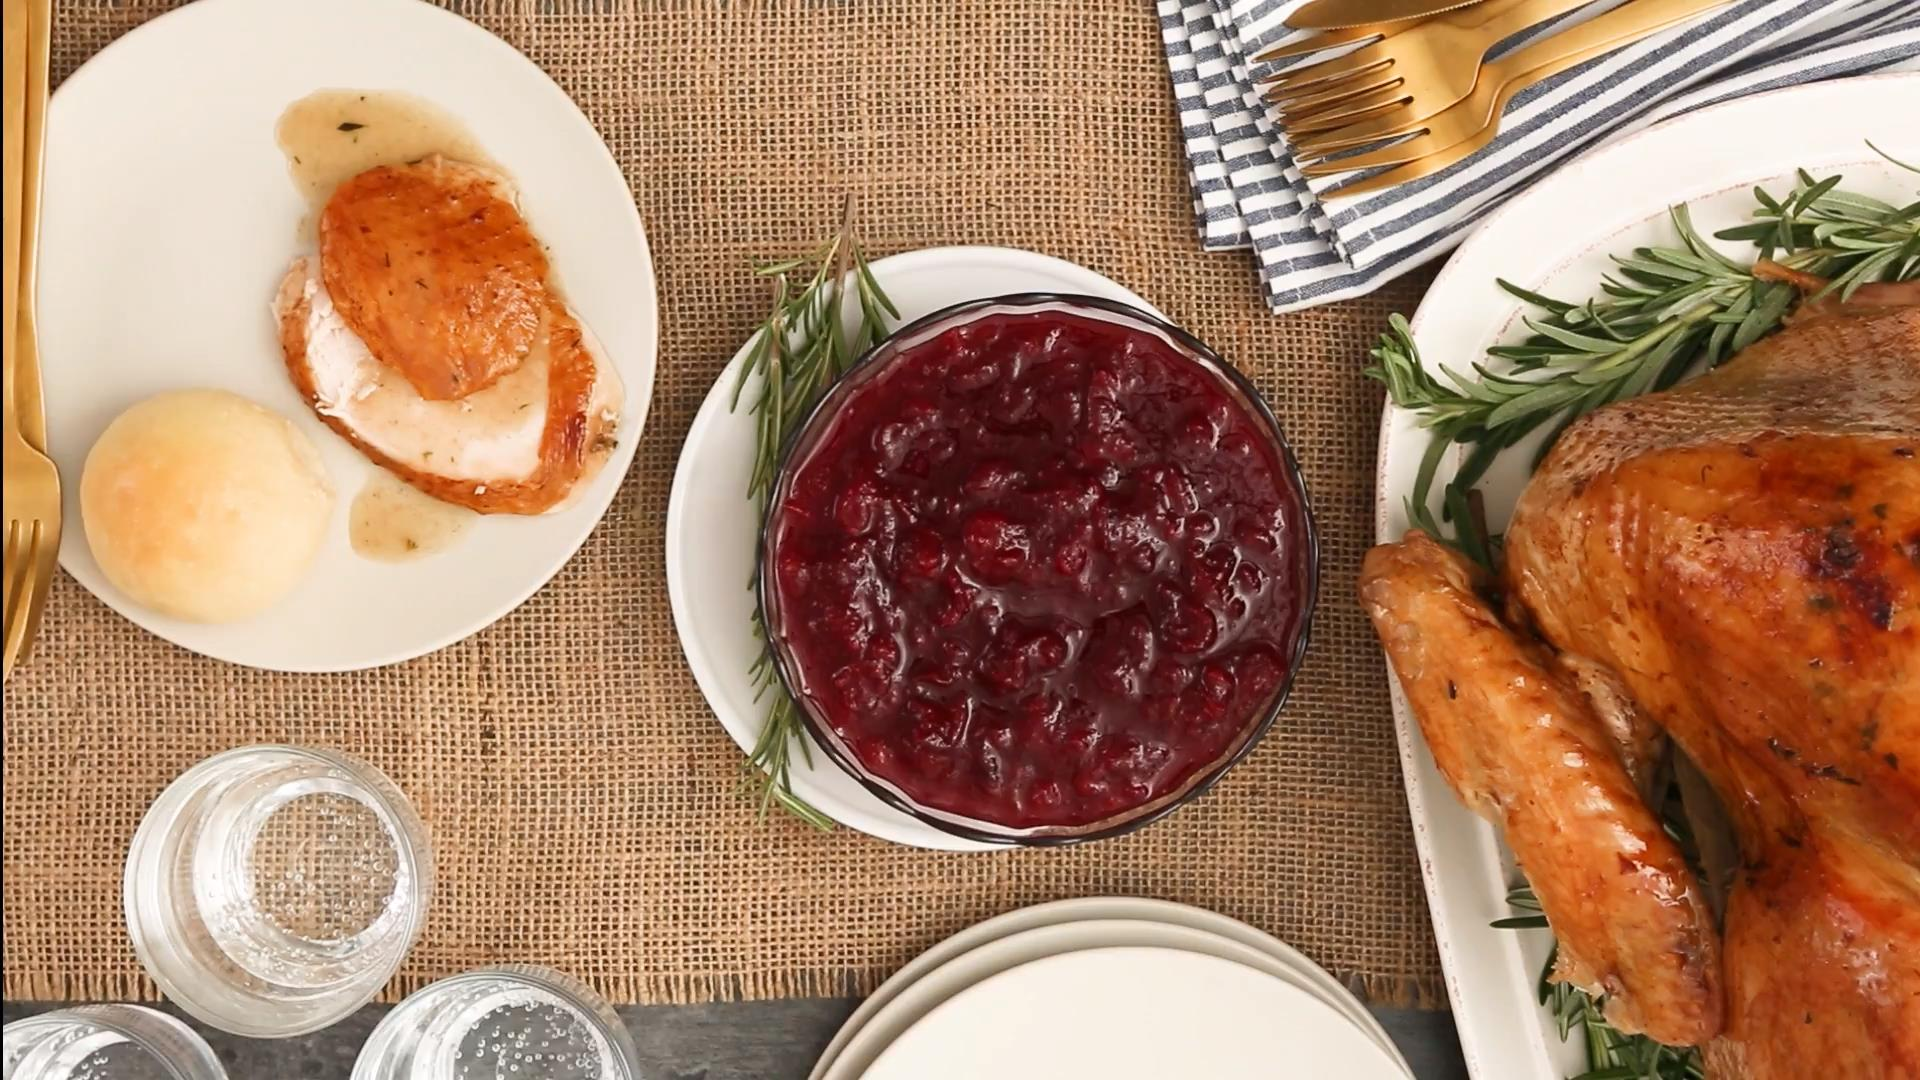 Delicious Cranberry Sauce Allrecipes Trusted Brands